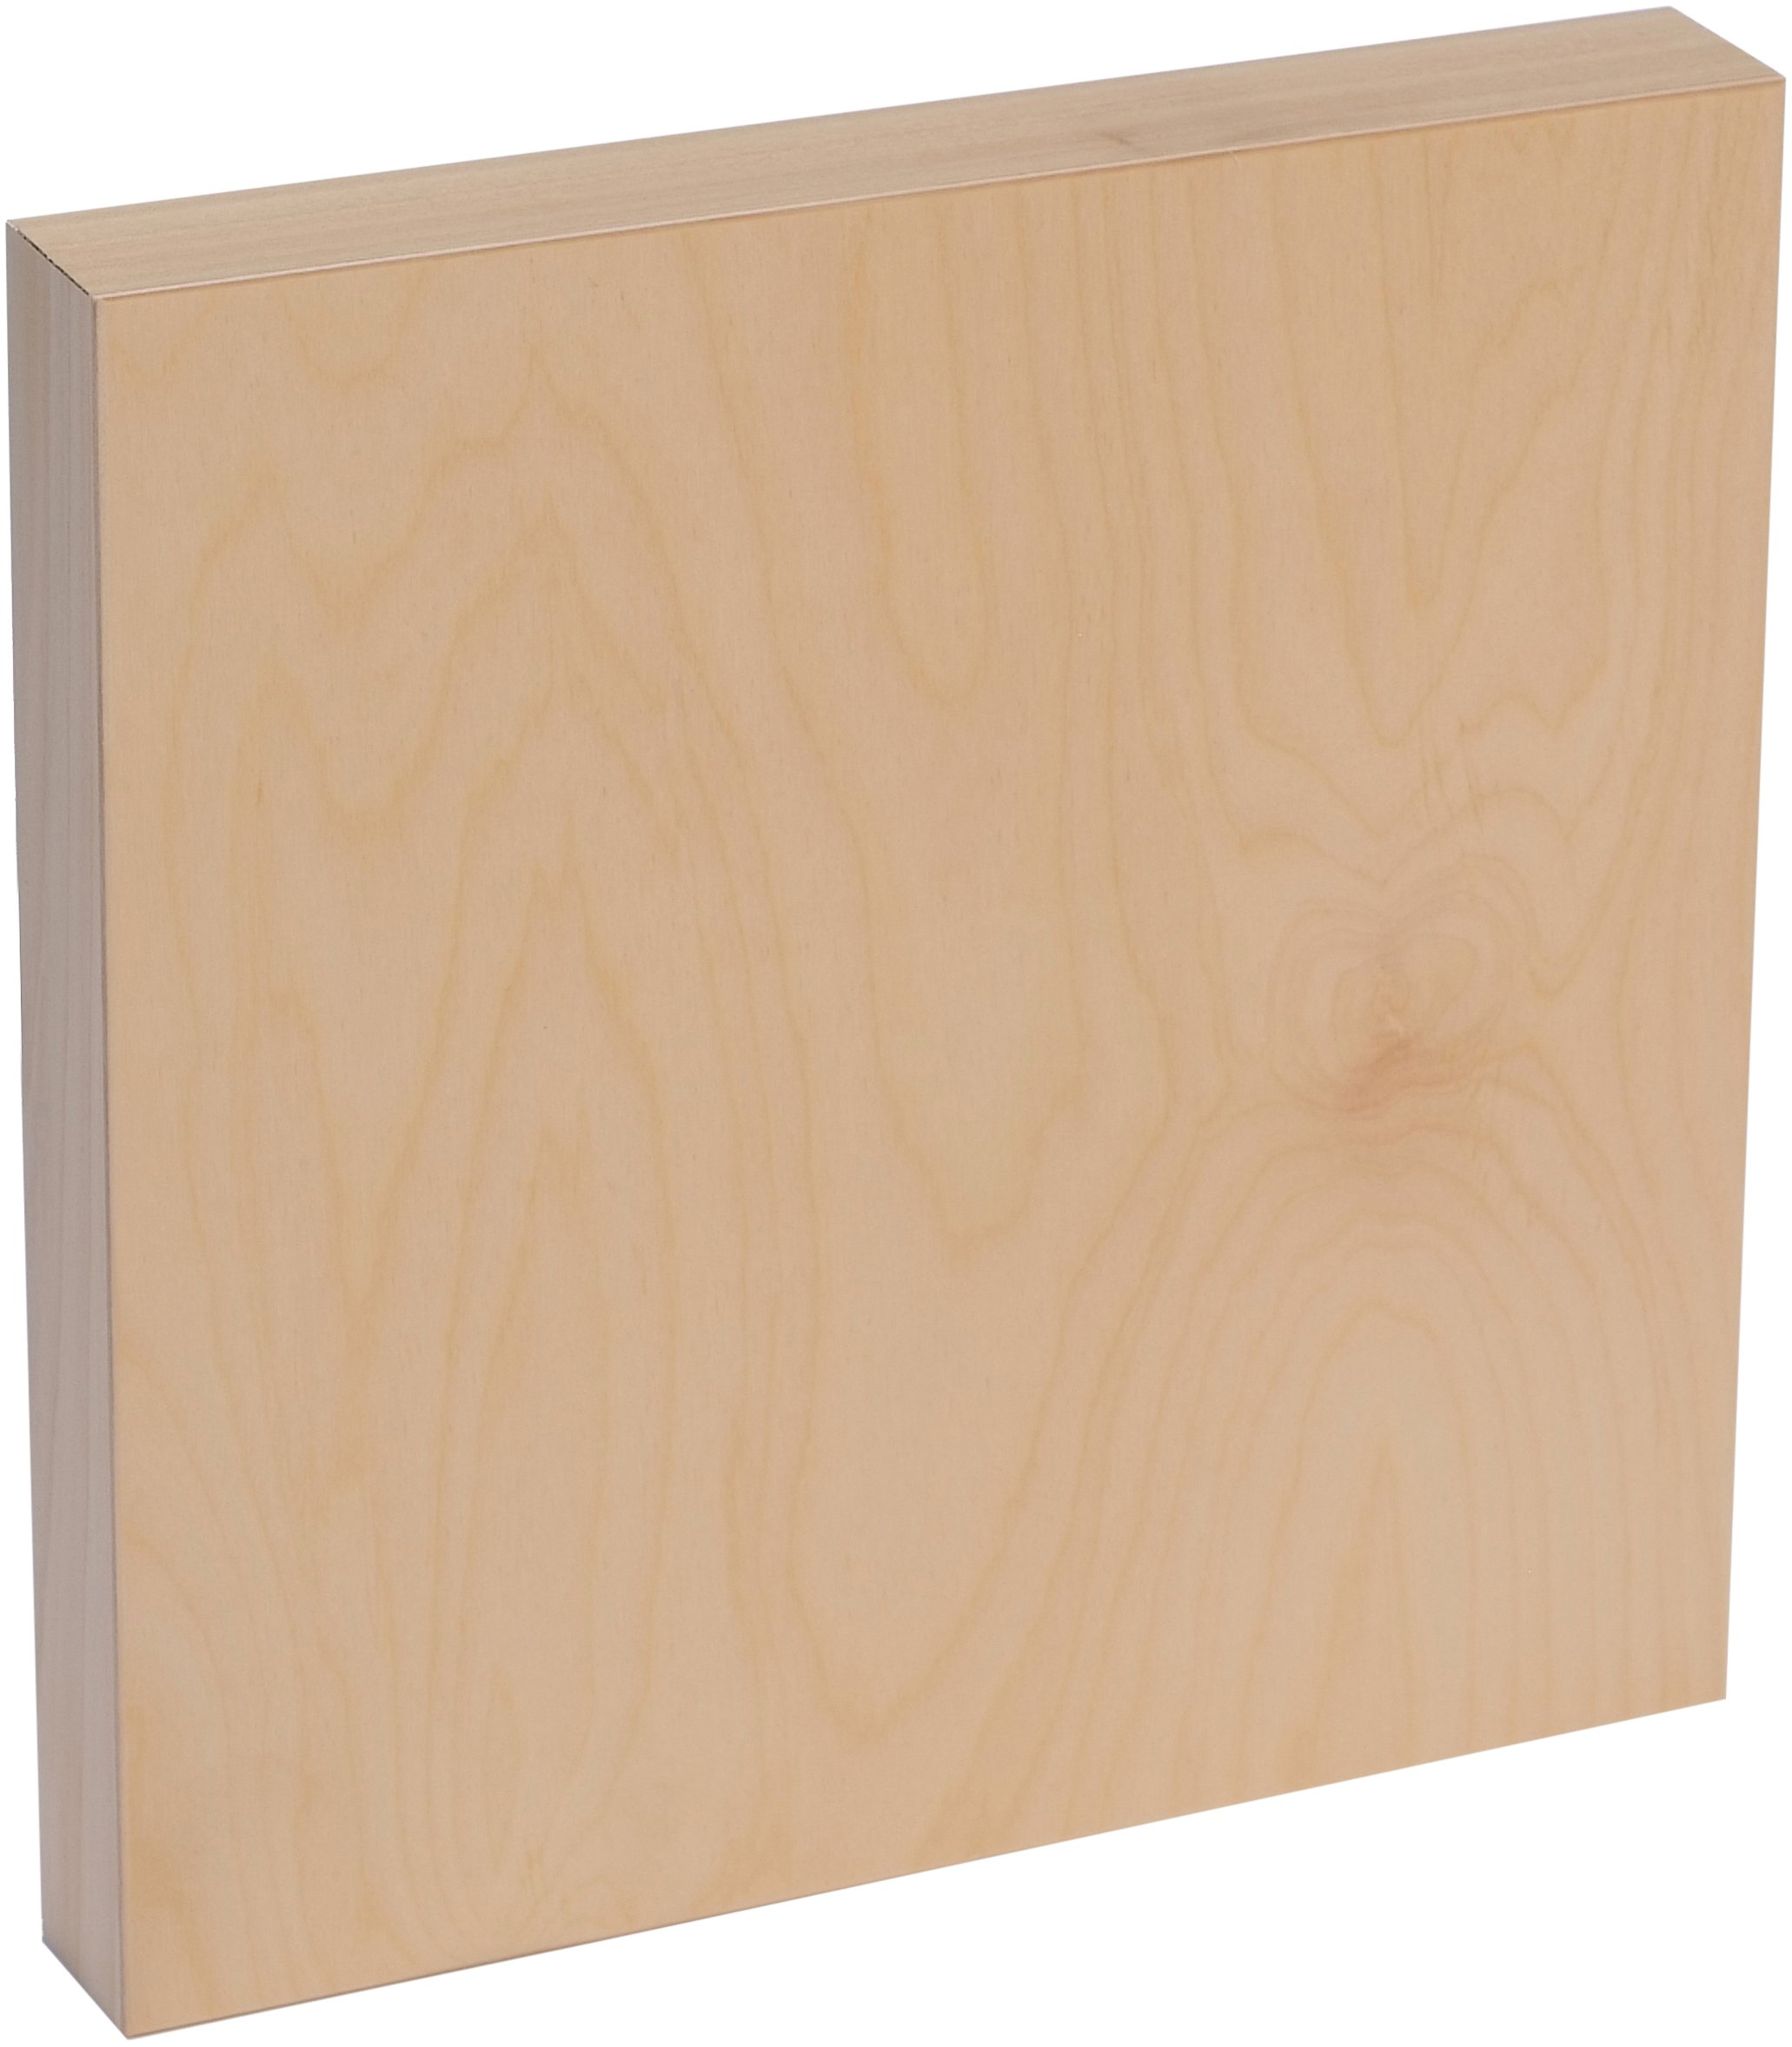 American Easel 18 Inch by 18 Inch by 7/8 Inch Deep Cradled Painting Panel